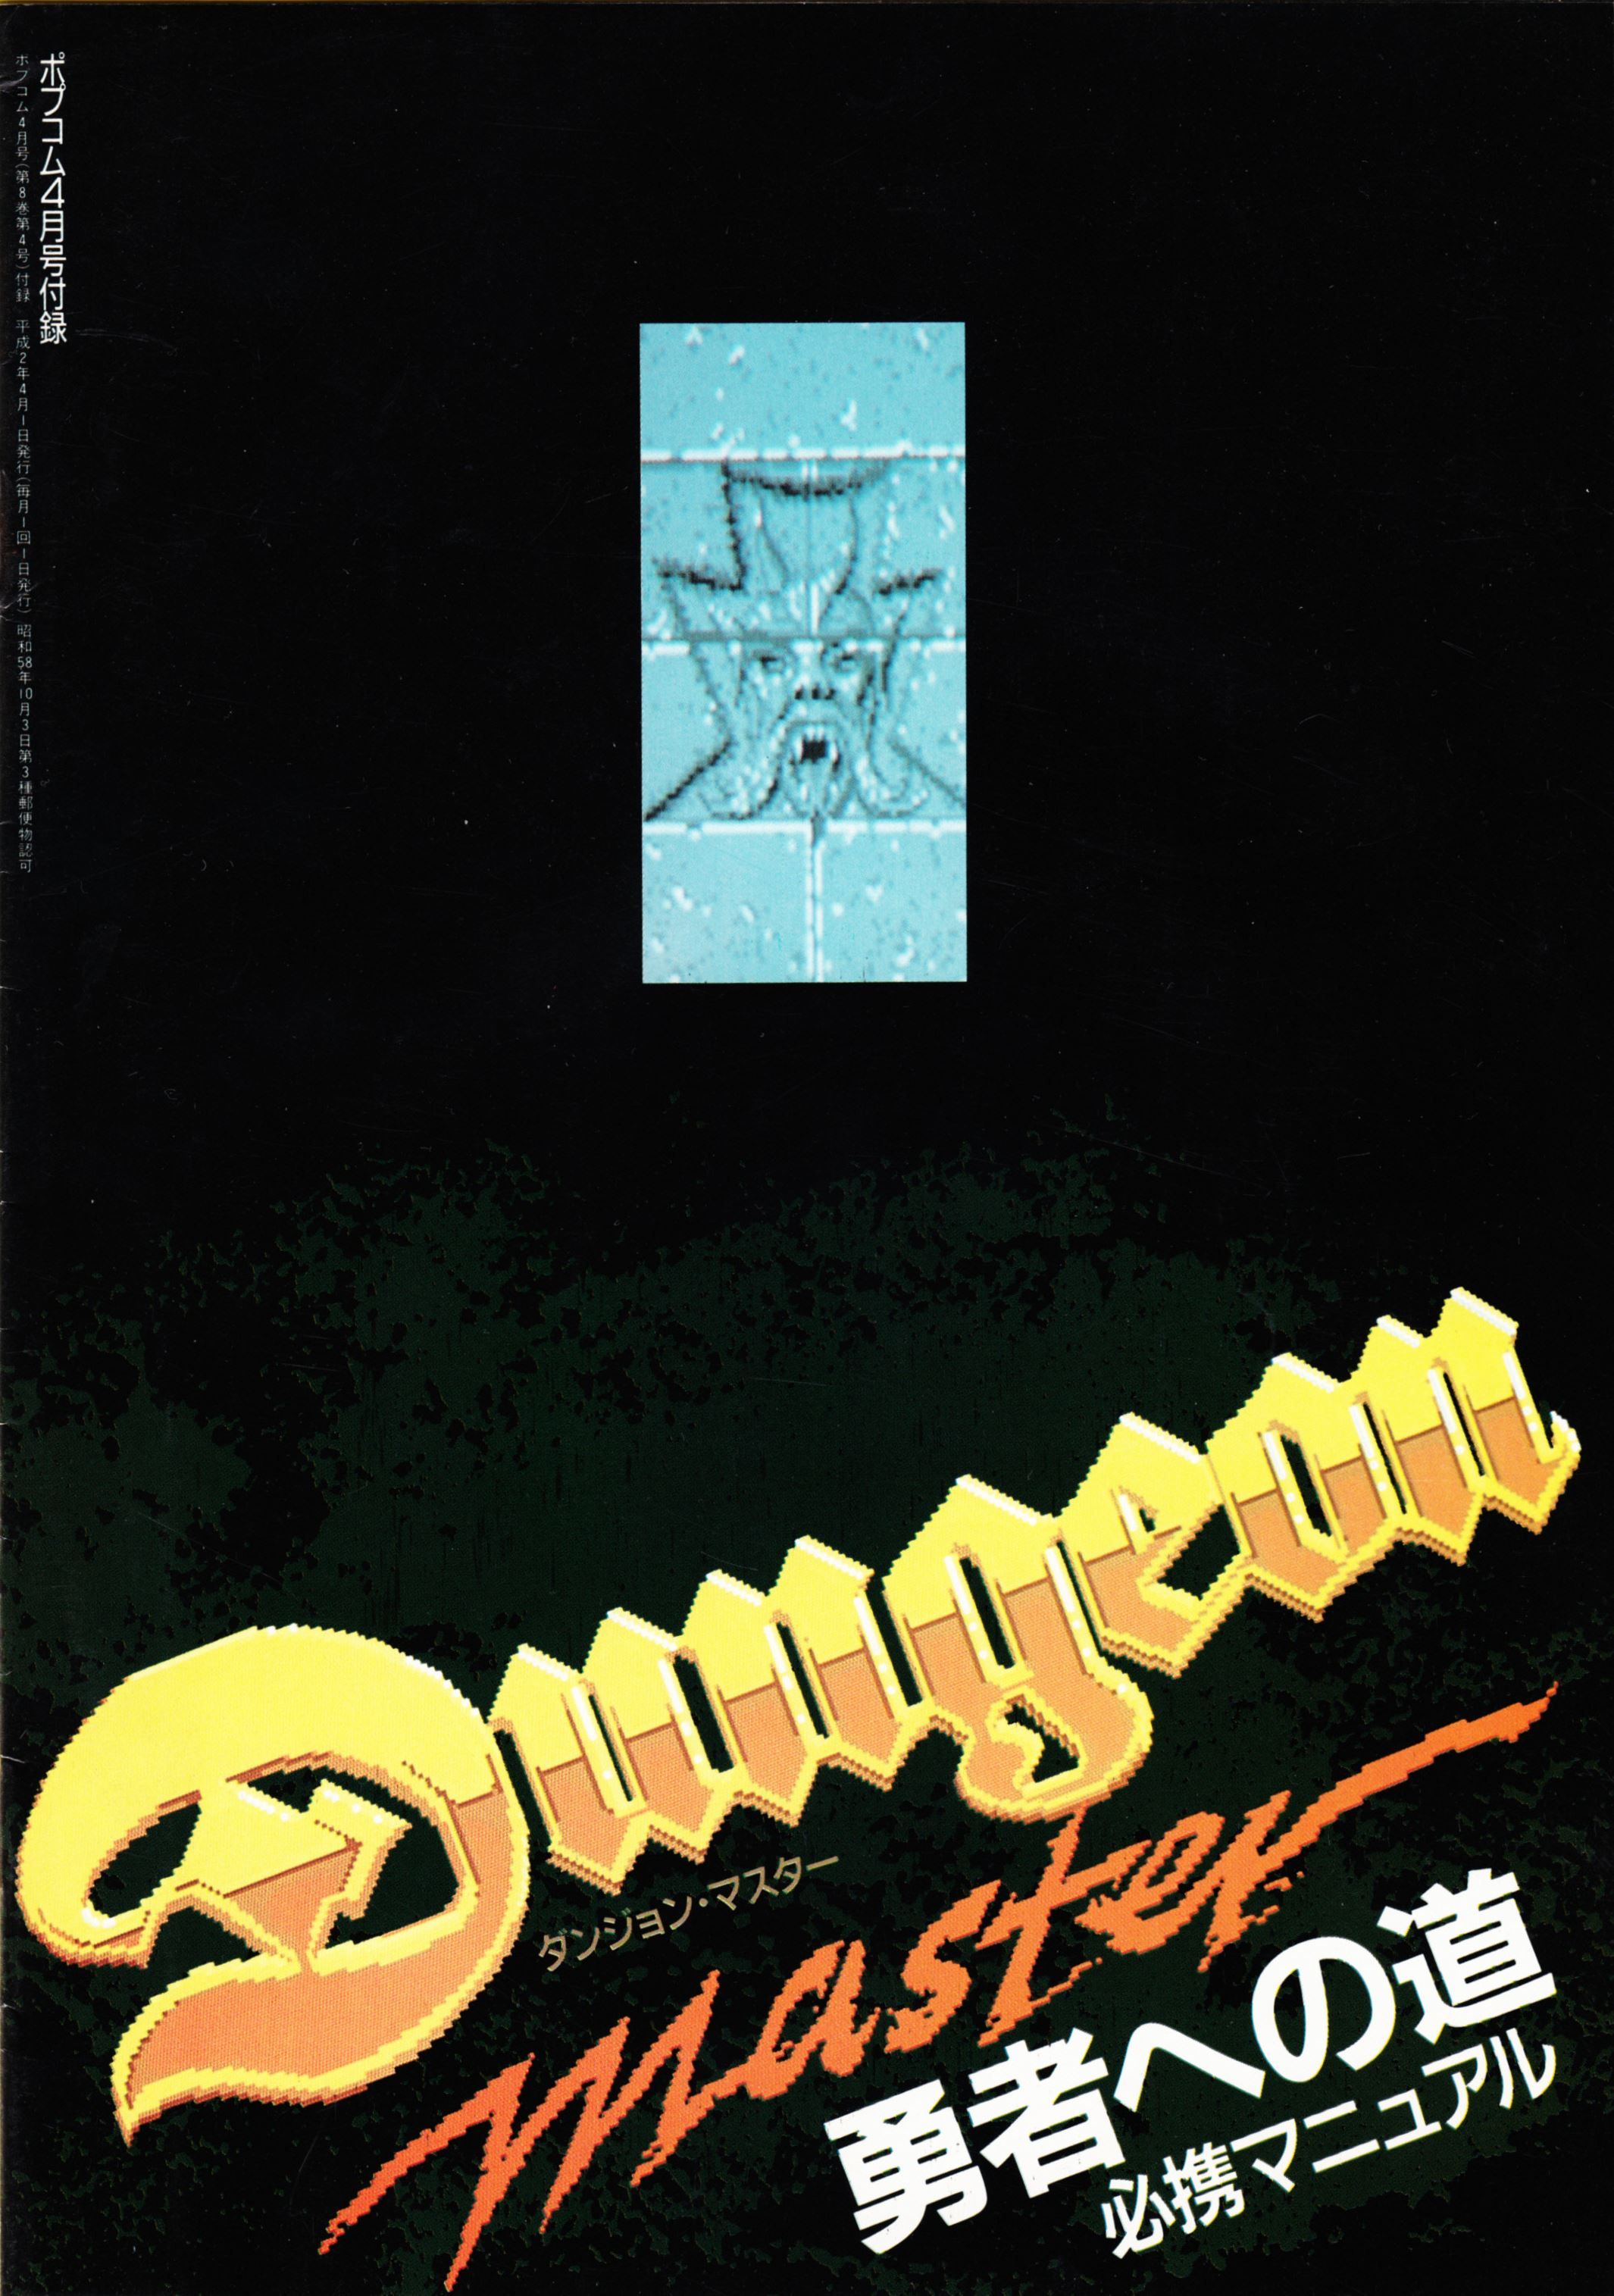 Supplement - Dungeon Master Companion Manual Guide published in Japanese magazine 'Popcom', Vol 4 No 1 01 April 1990, Page 1